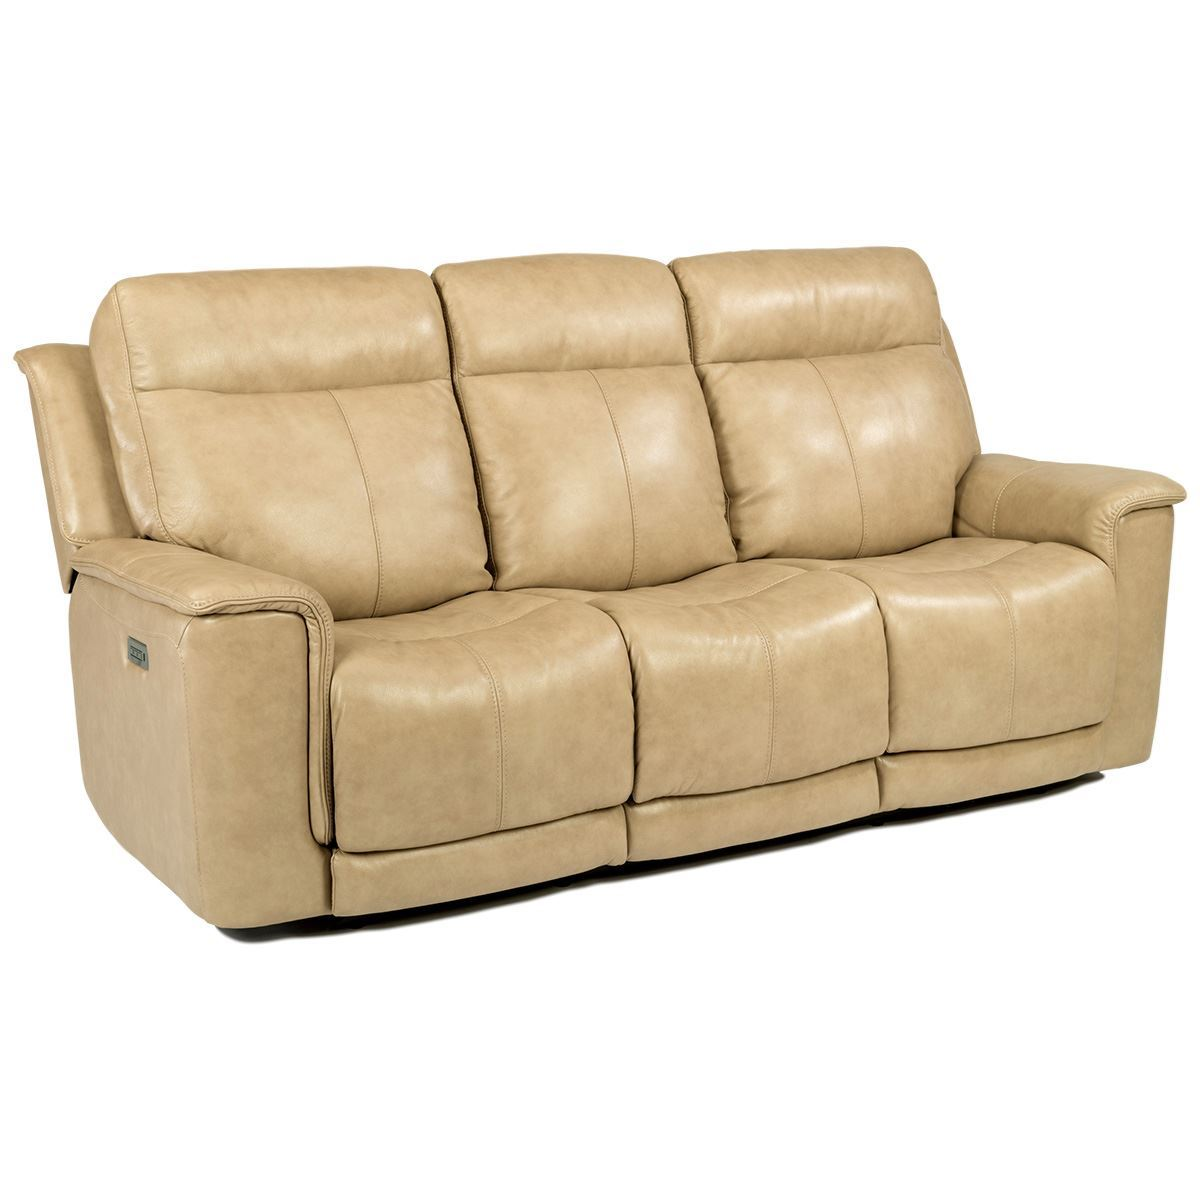 Picture of Miller Power Recliner Sofa with Power Headrest